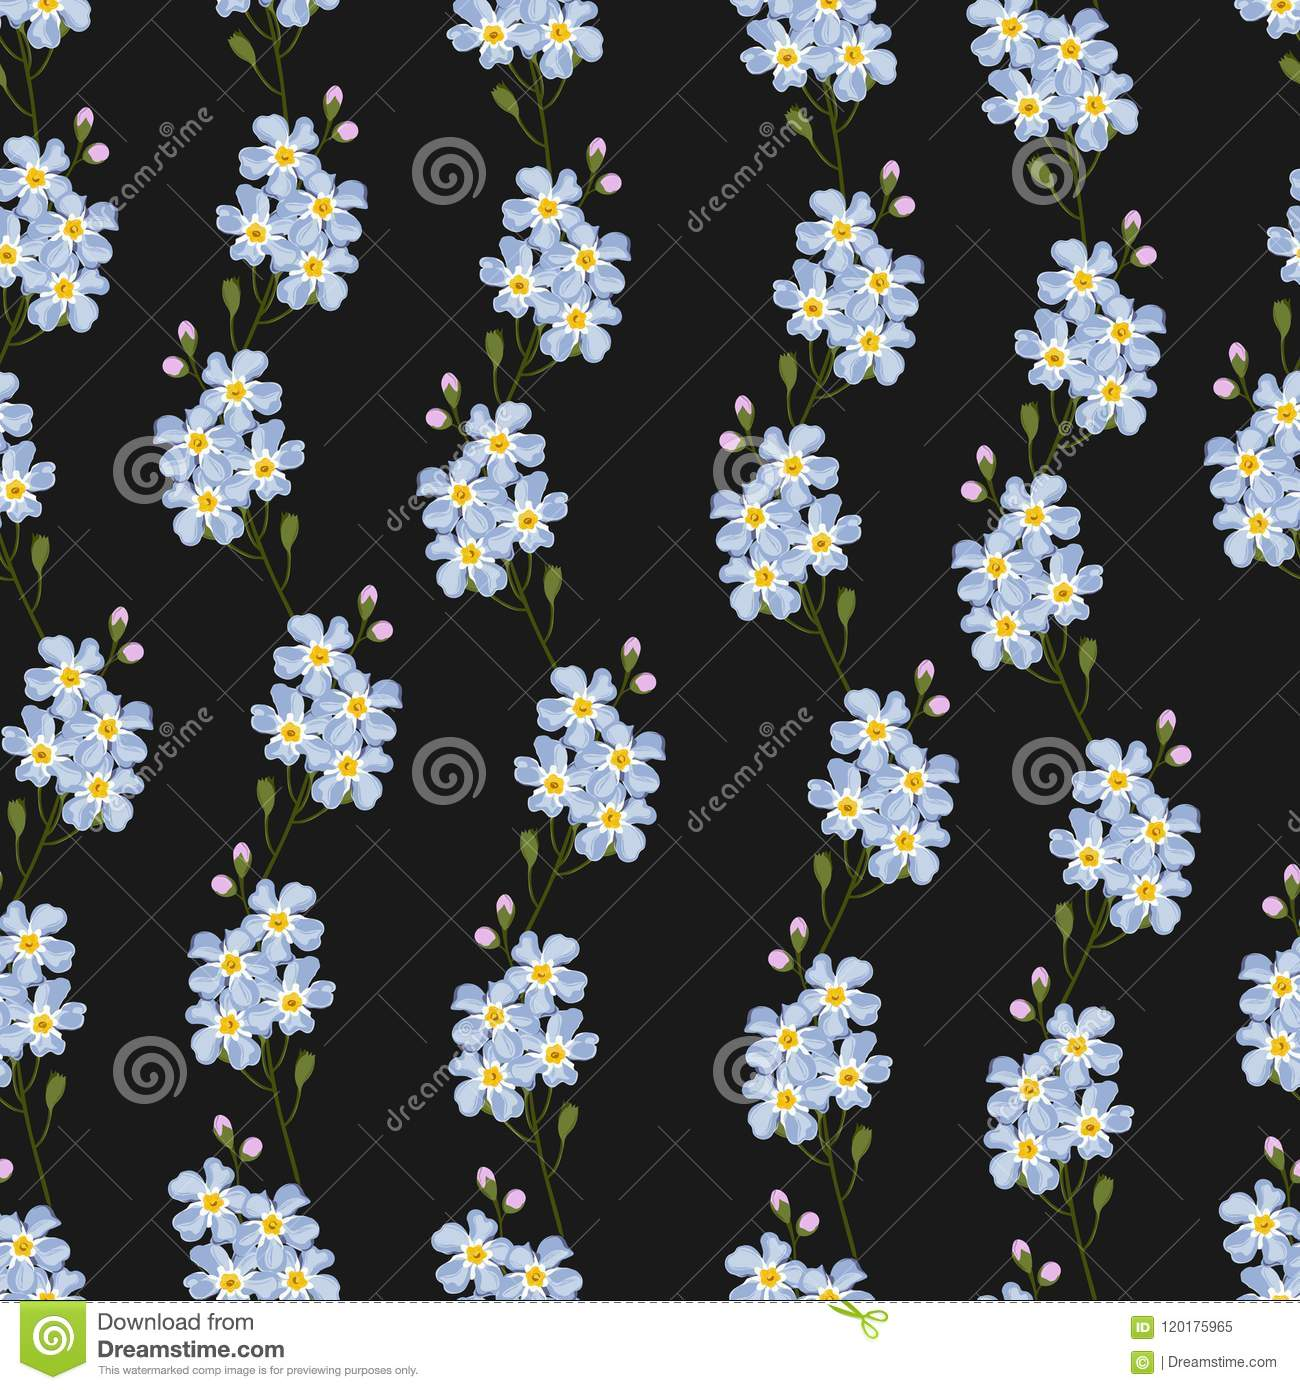 Forget Me Not Seamless Pattern Blue Spring Flowers With Yellow